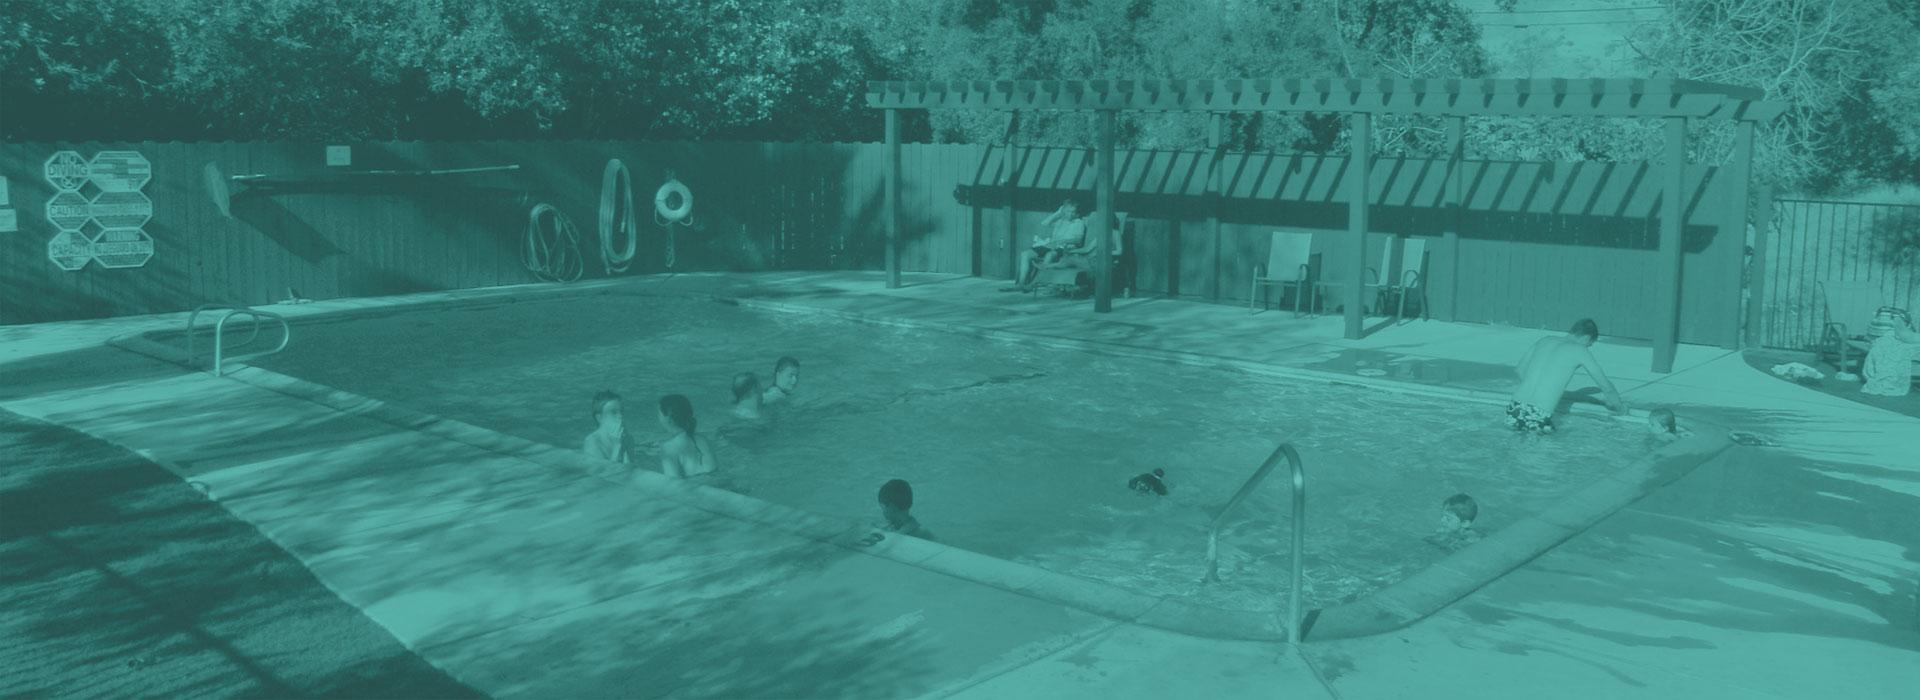 Clean Swimming Pool - Lemon Cove Campground - RV Park - Tent Camping - Three Rivers Camping